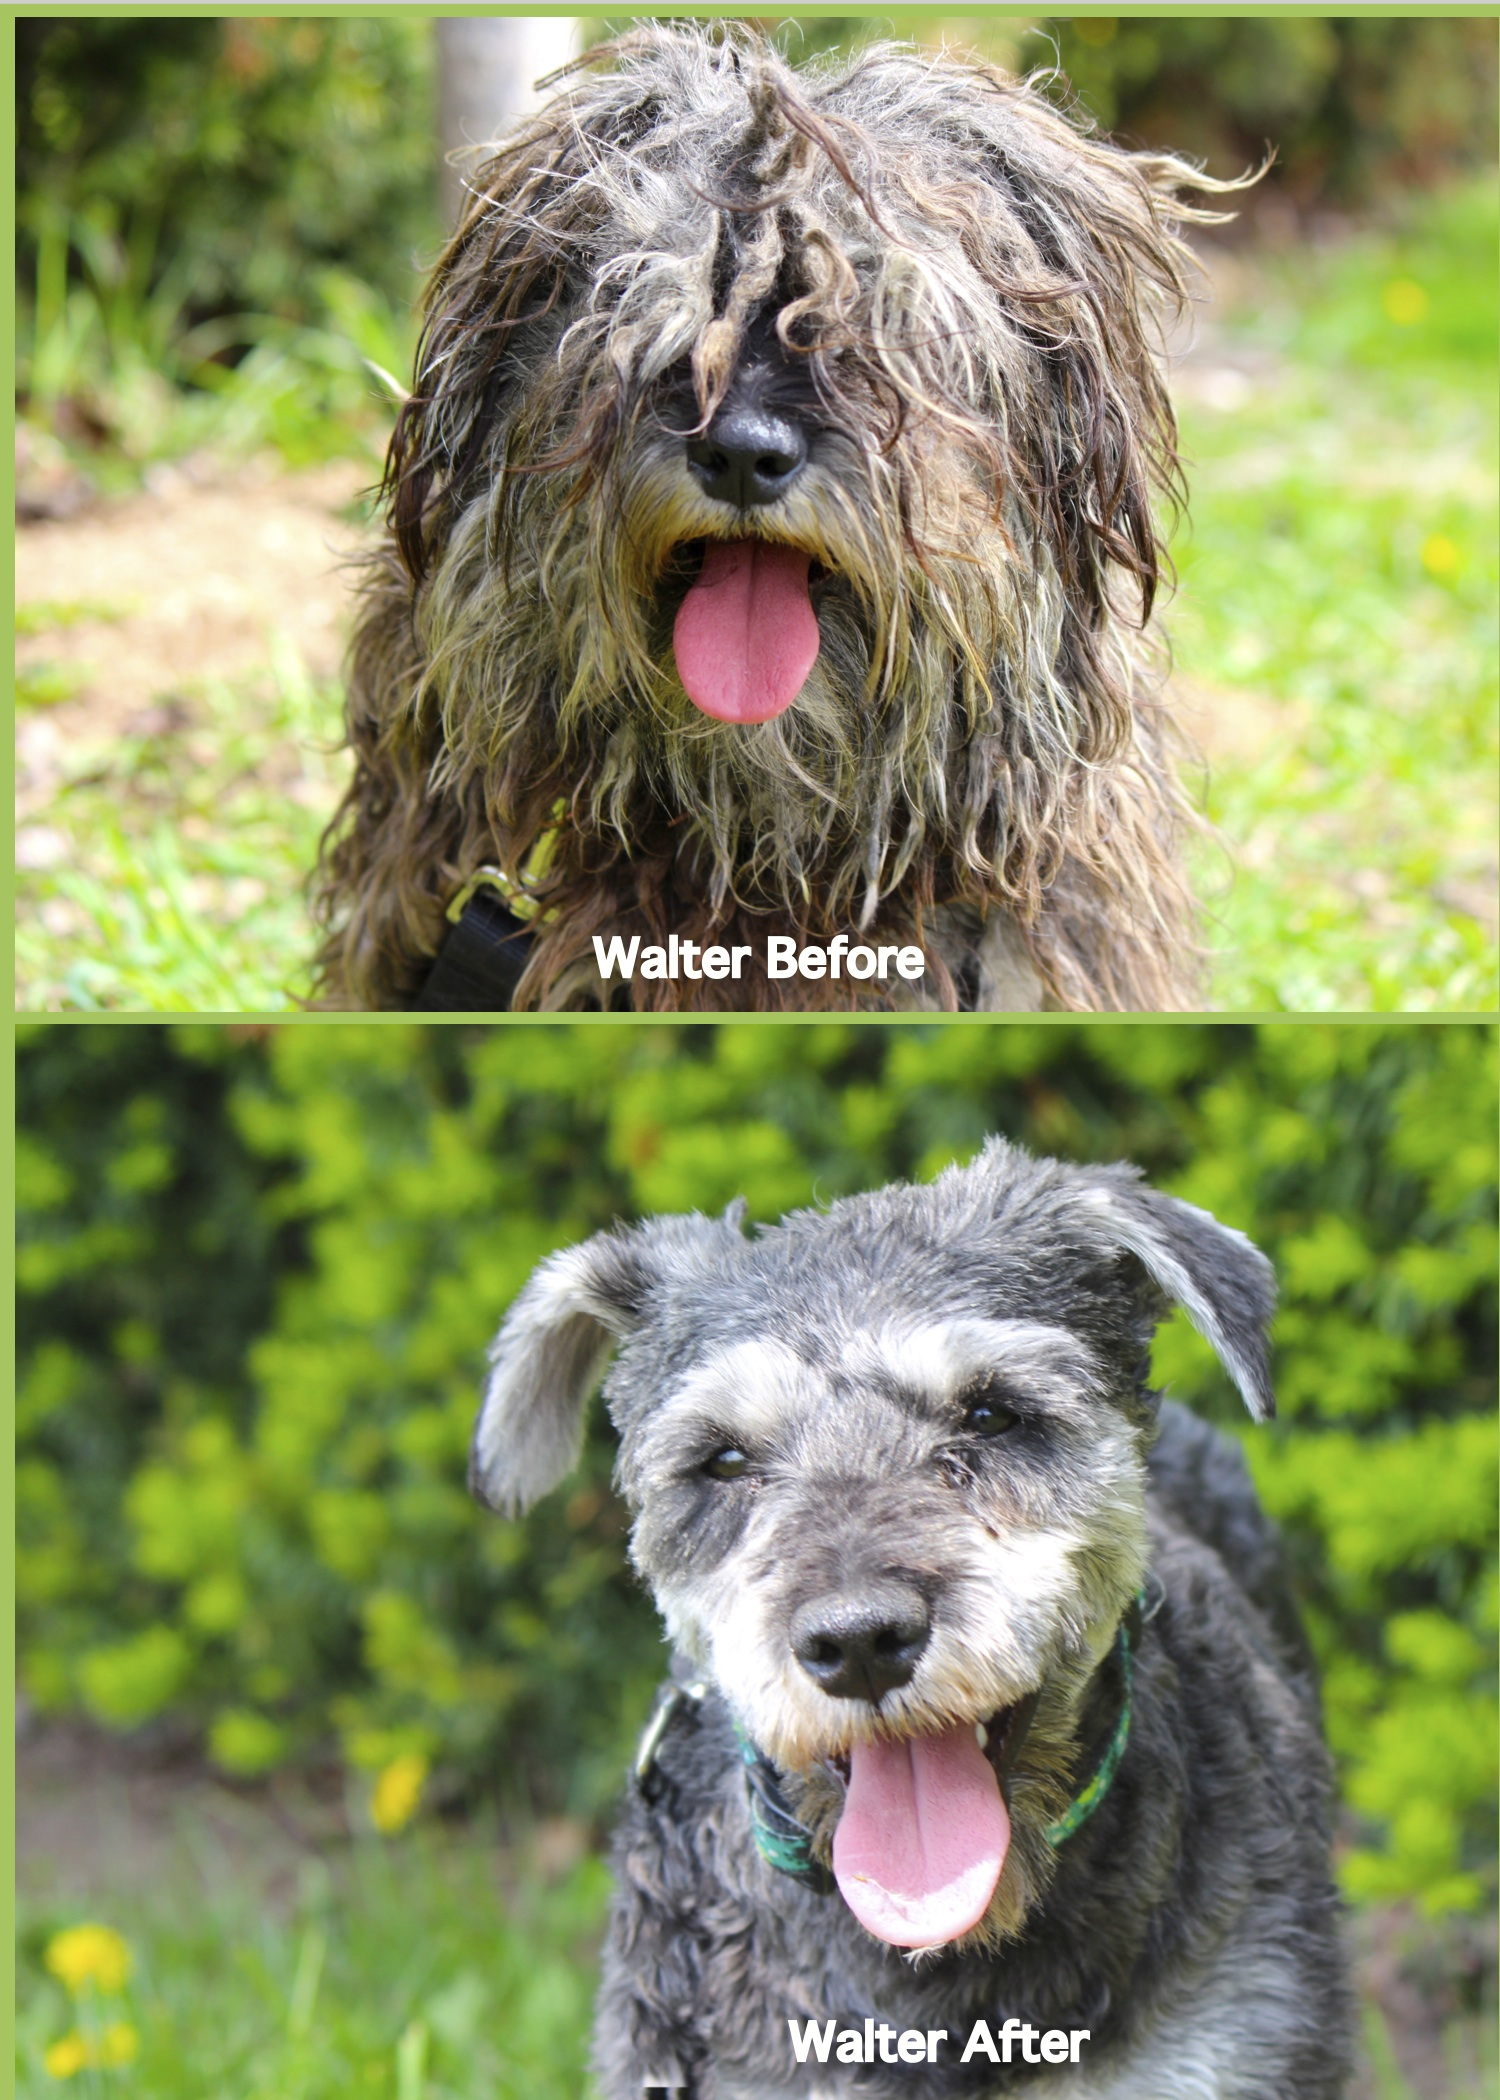 Walter: Before & After